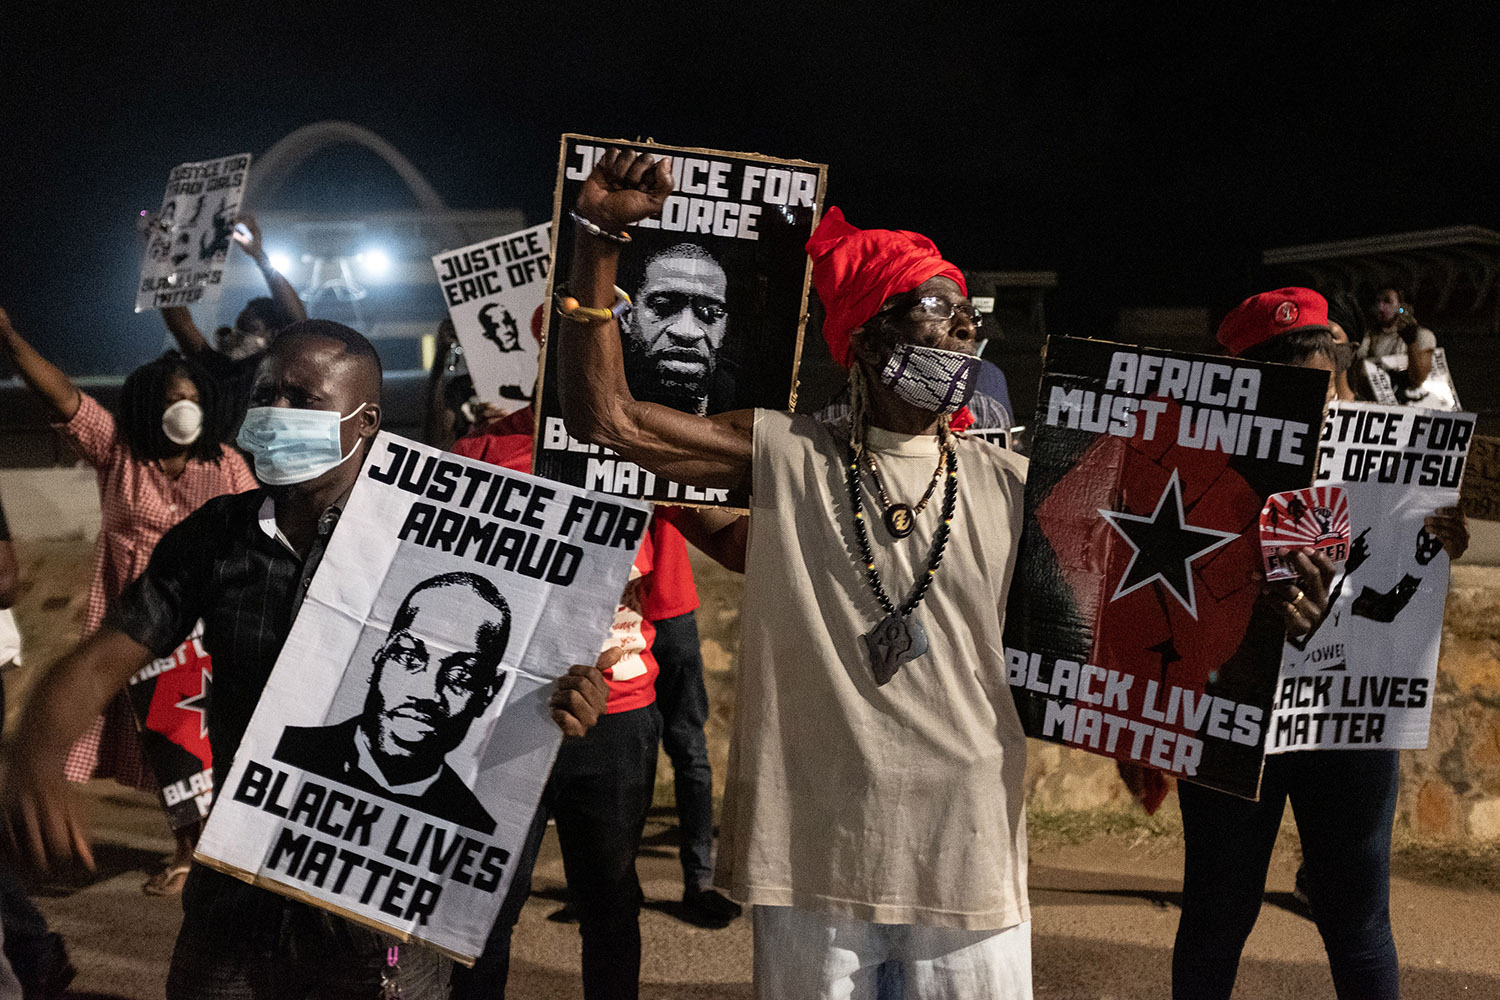 Activists raise their fists in Accra, Ghana, on June 6 amid global protests against racism and police brutality in the United States.